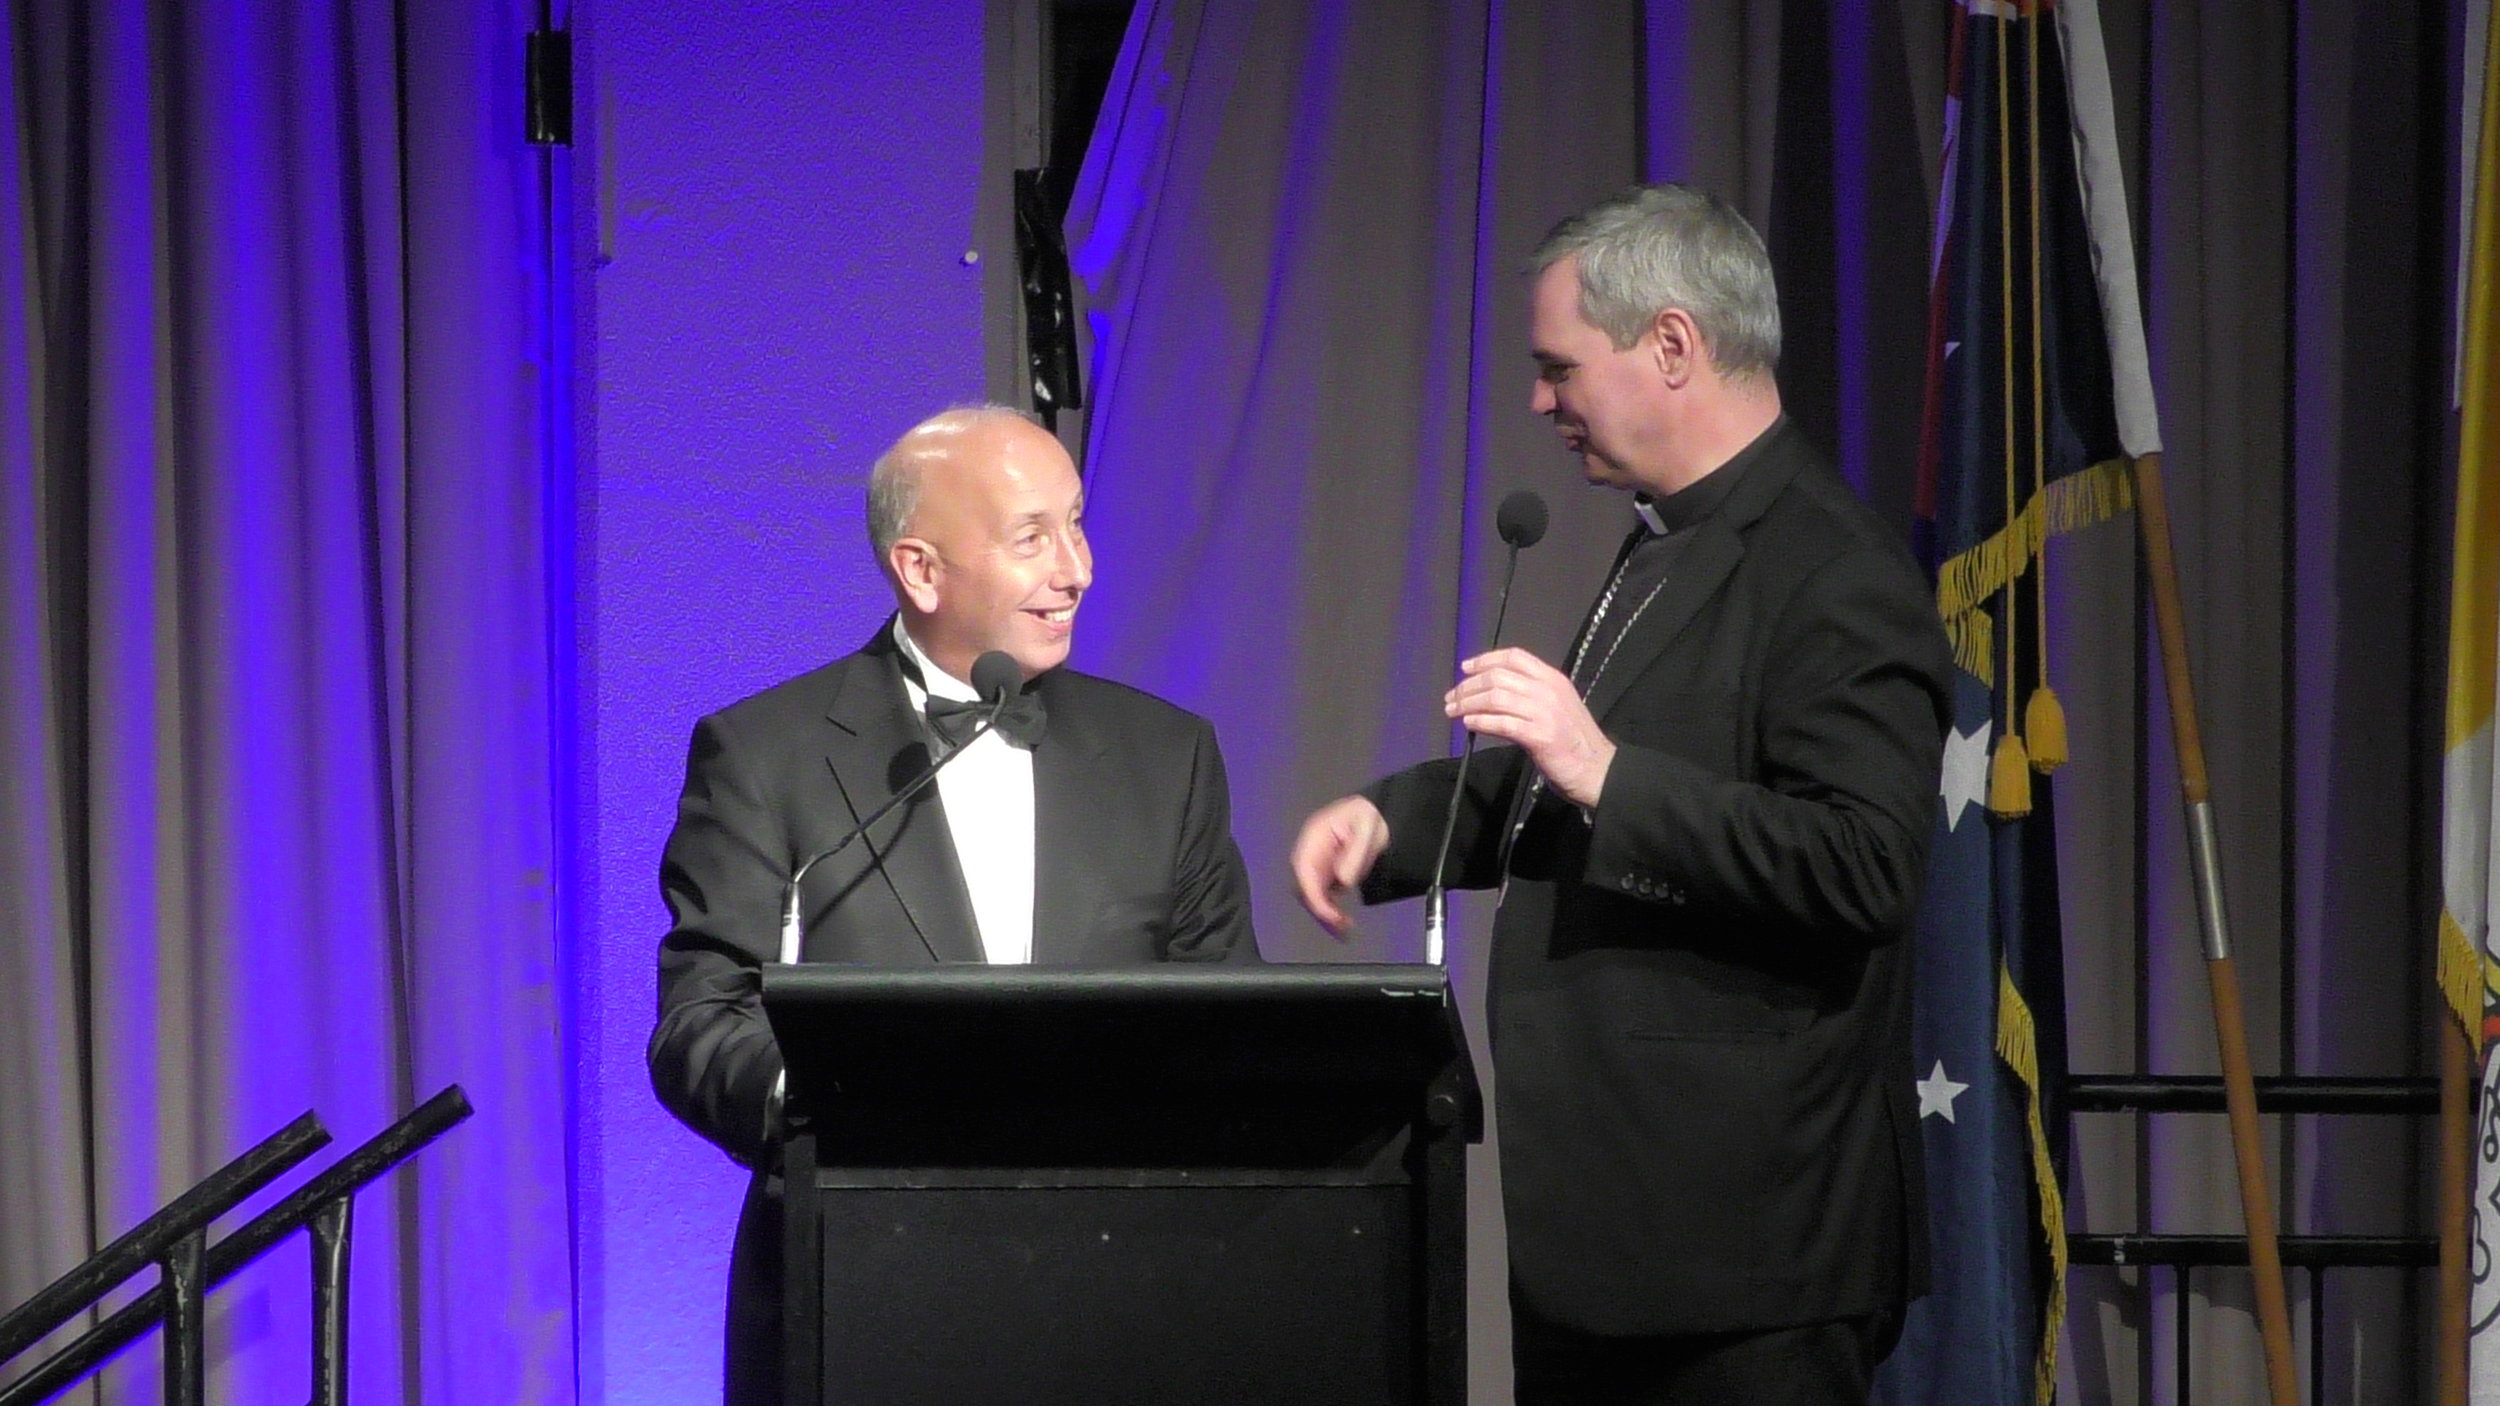 MC Shane Healy interviews Archbishop Peter. Picture: Andrew Vaccaro.